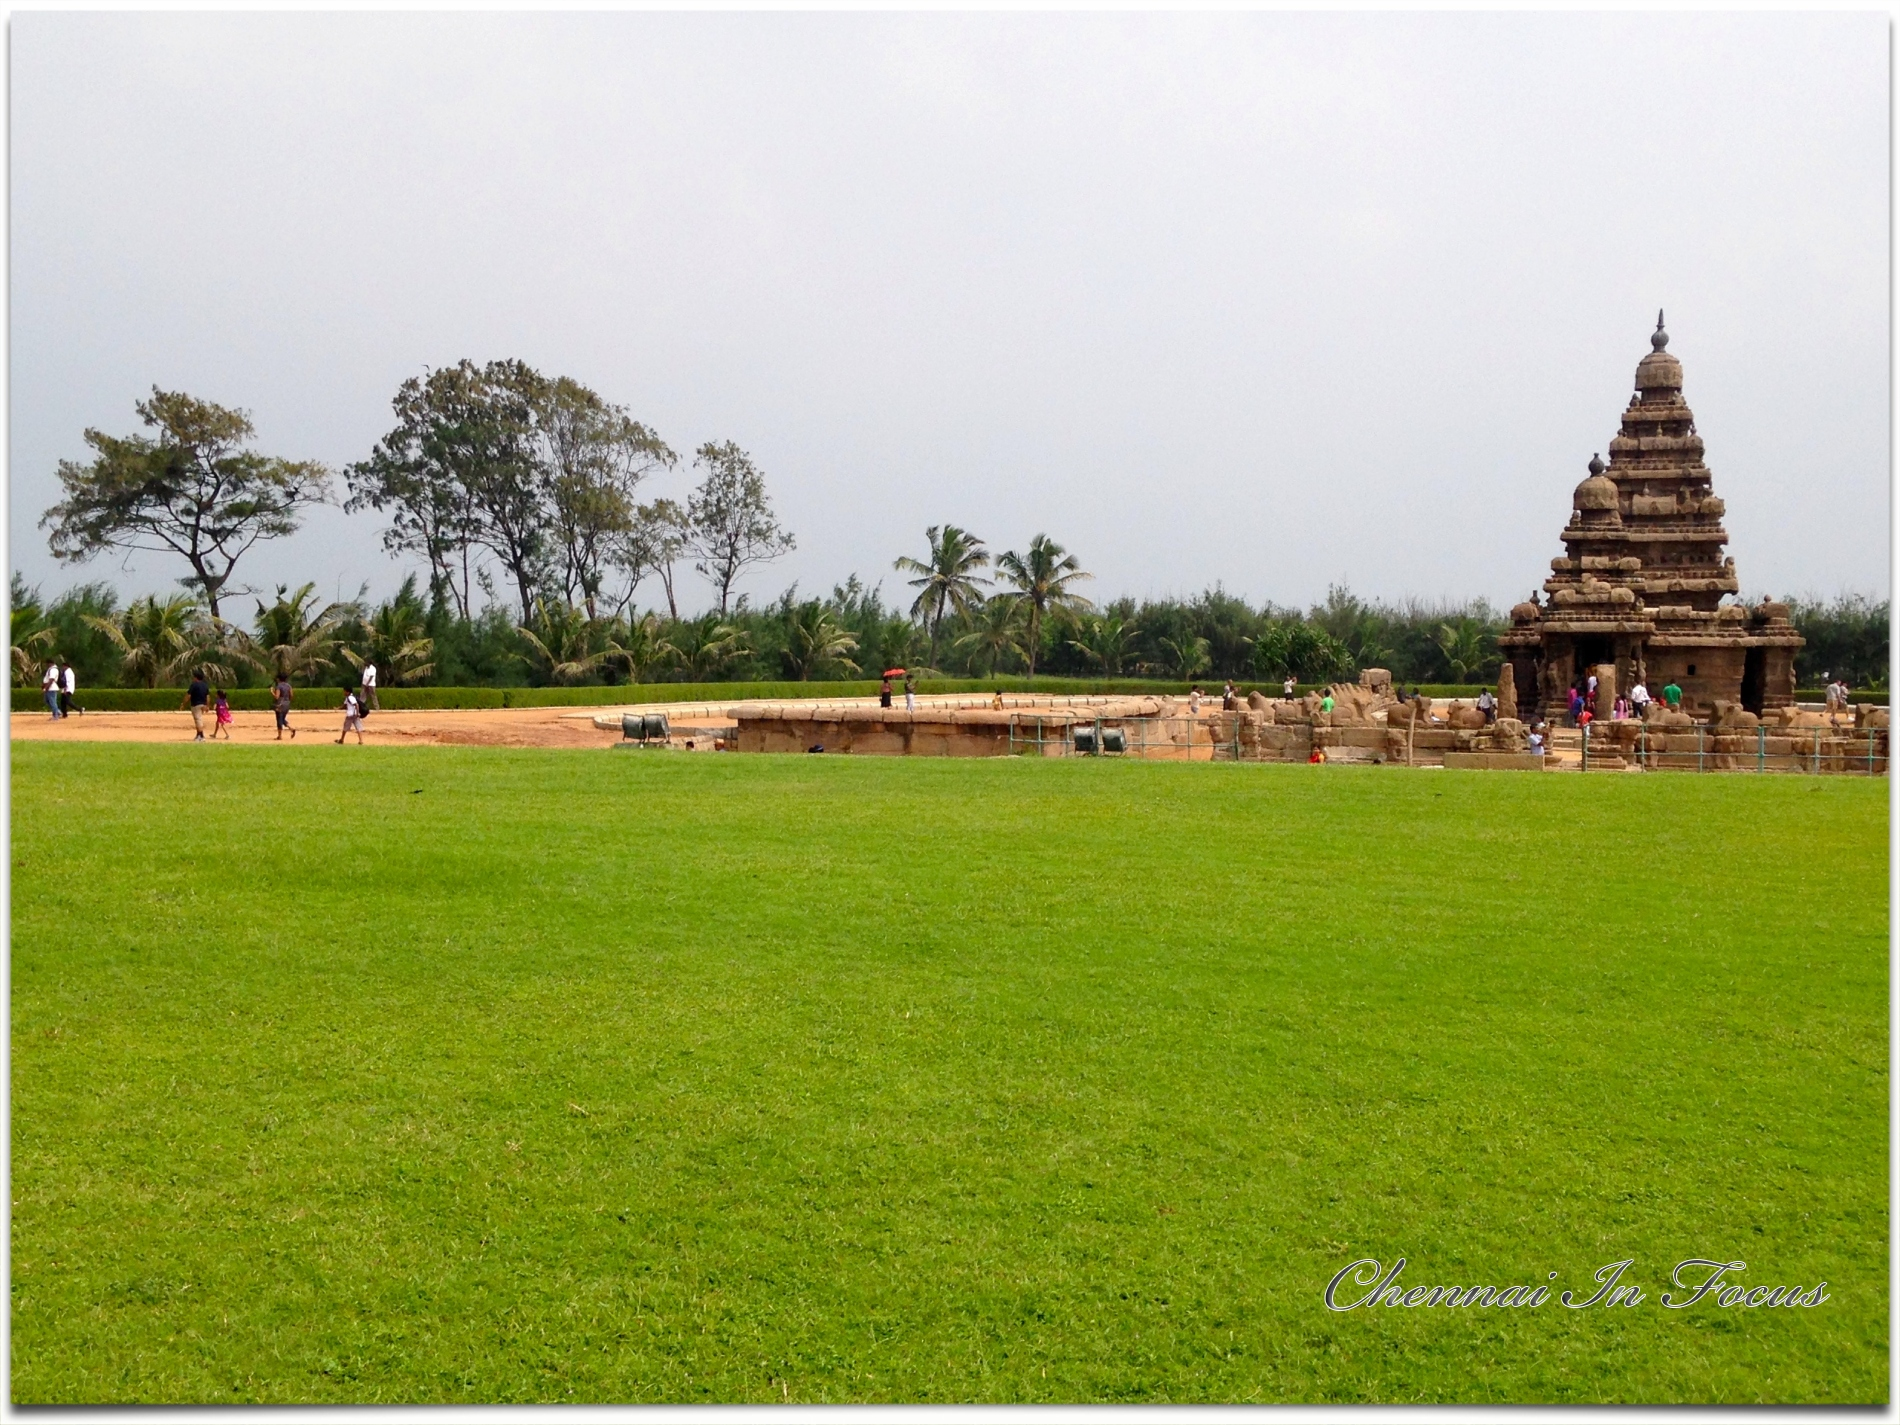 Mamallapuram, or Mahabalipuram, is a town on a strip of land between the Bay of Bengal and the Great Salt Lake, in the south Indian state of Tamil Nadu.